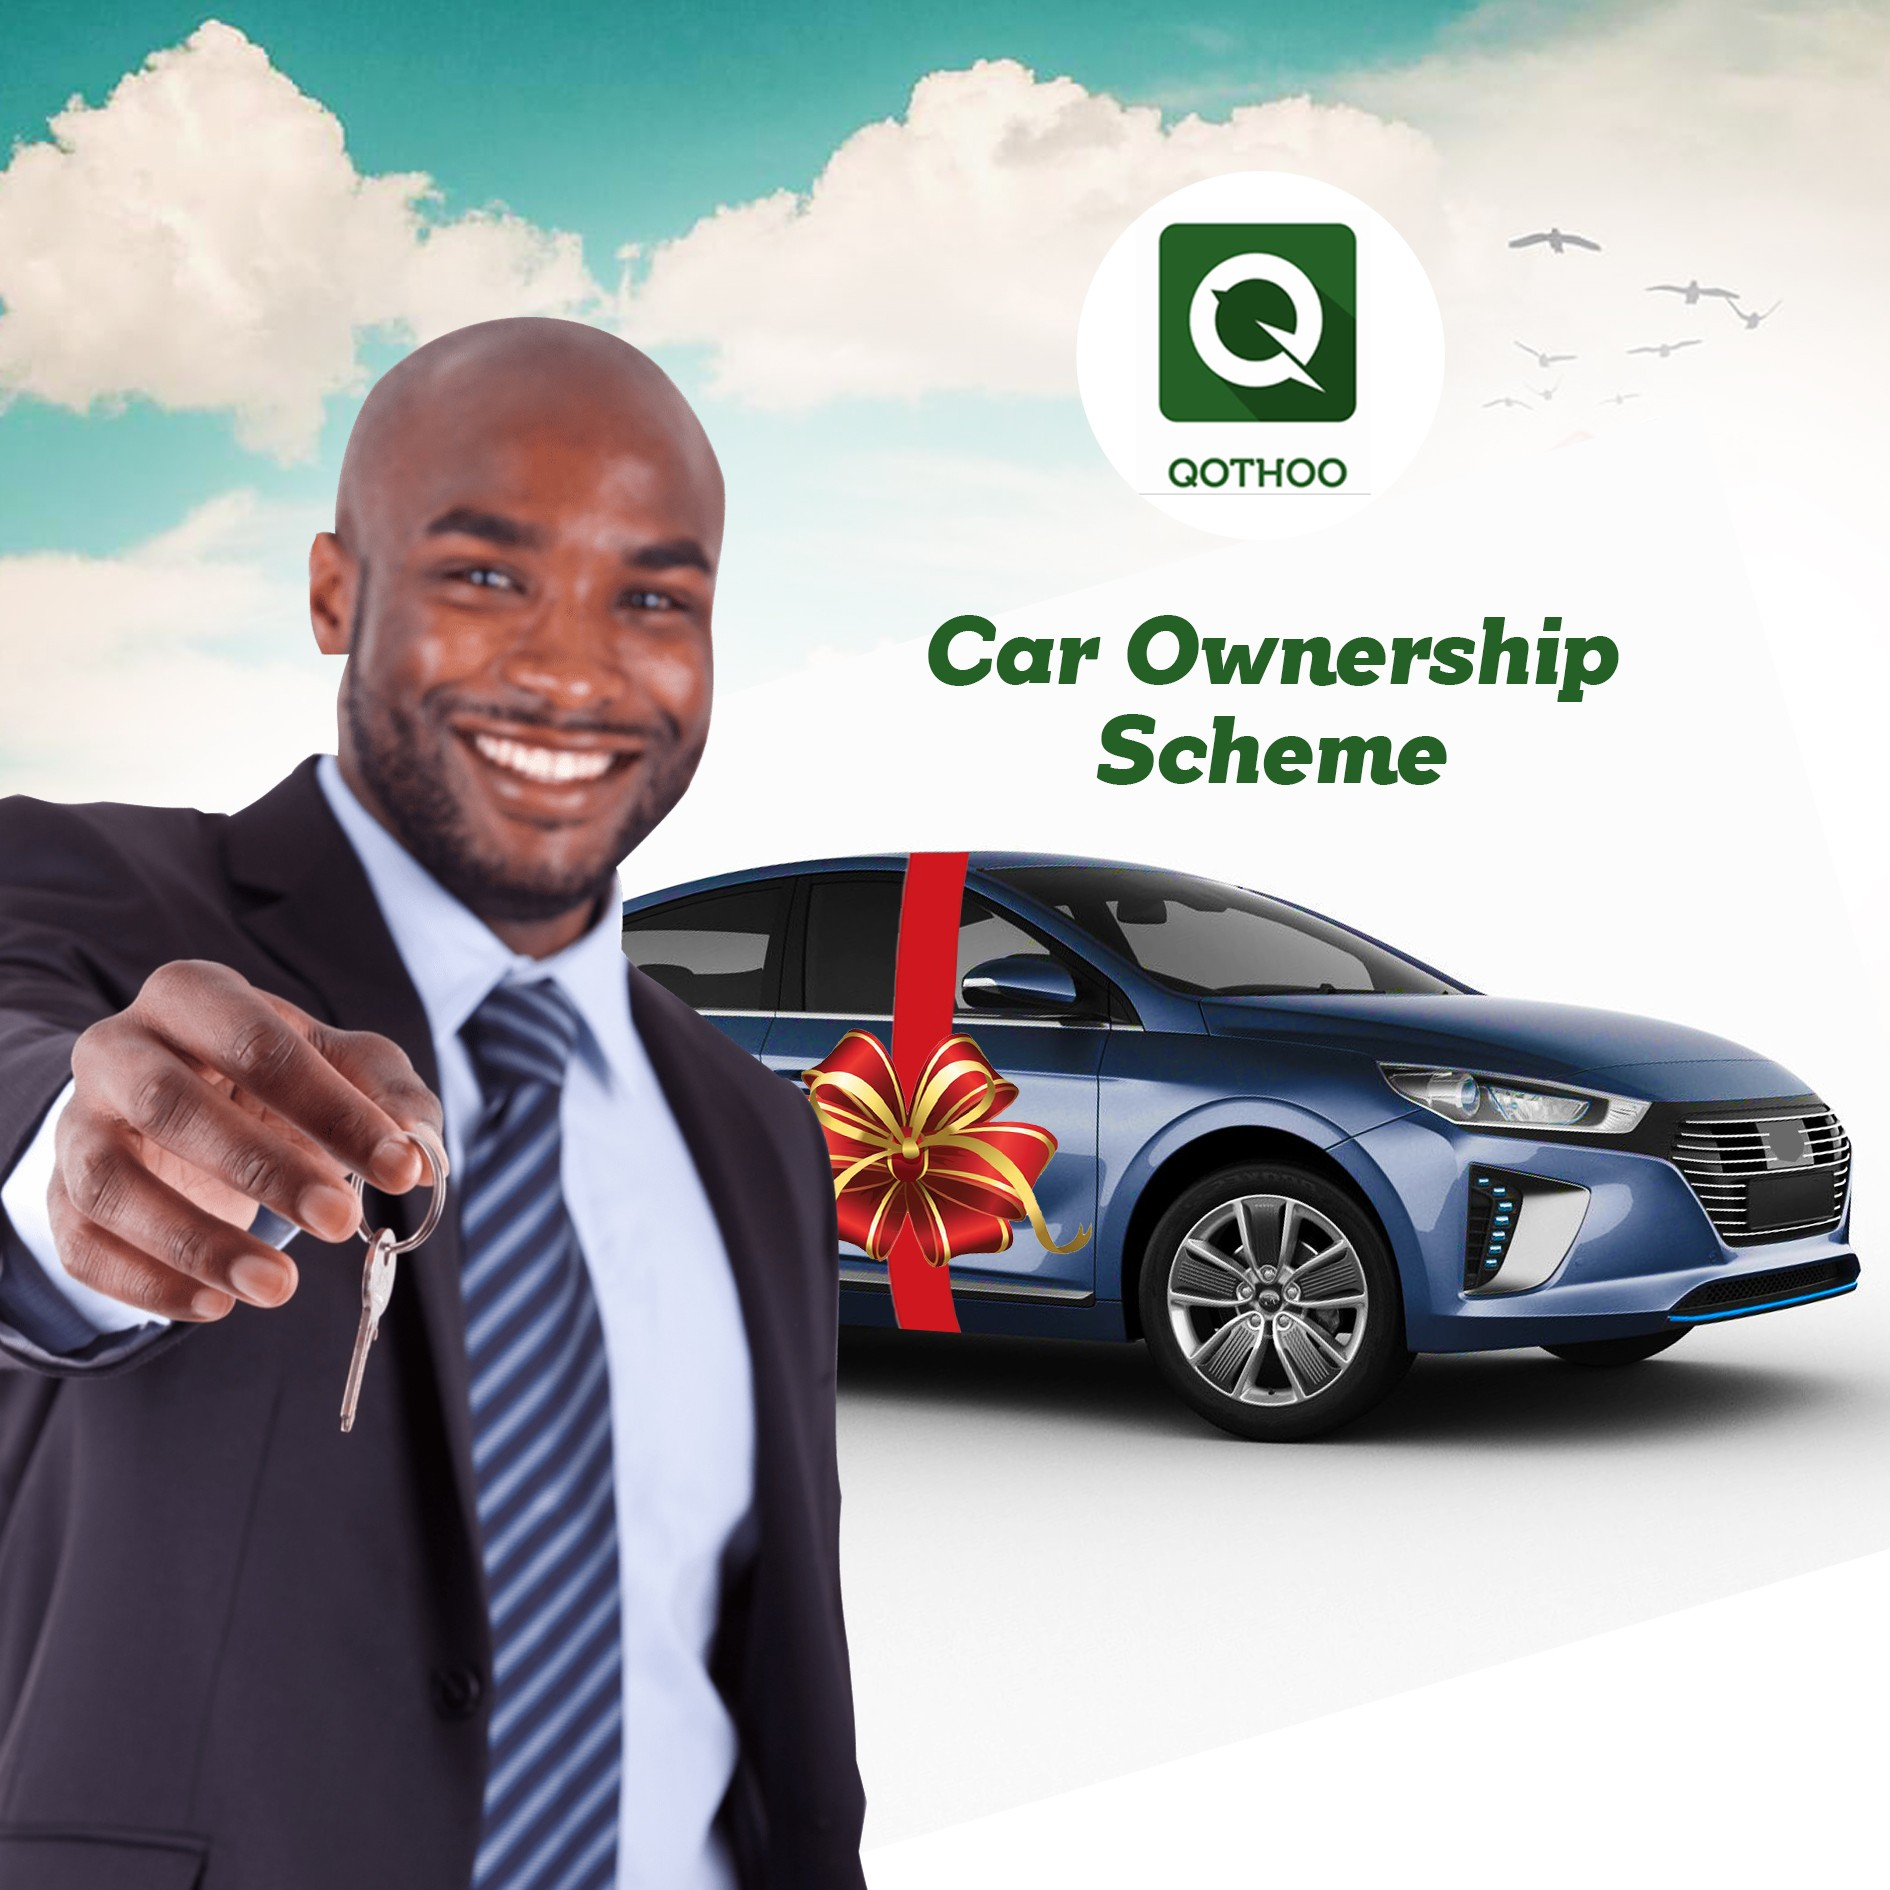 Become an Qothoo partner and benefit from our car ownership scheme